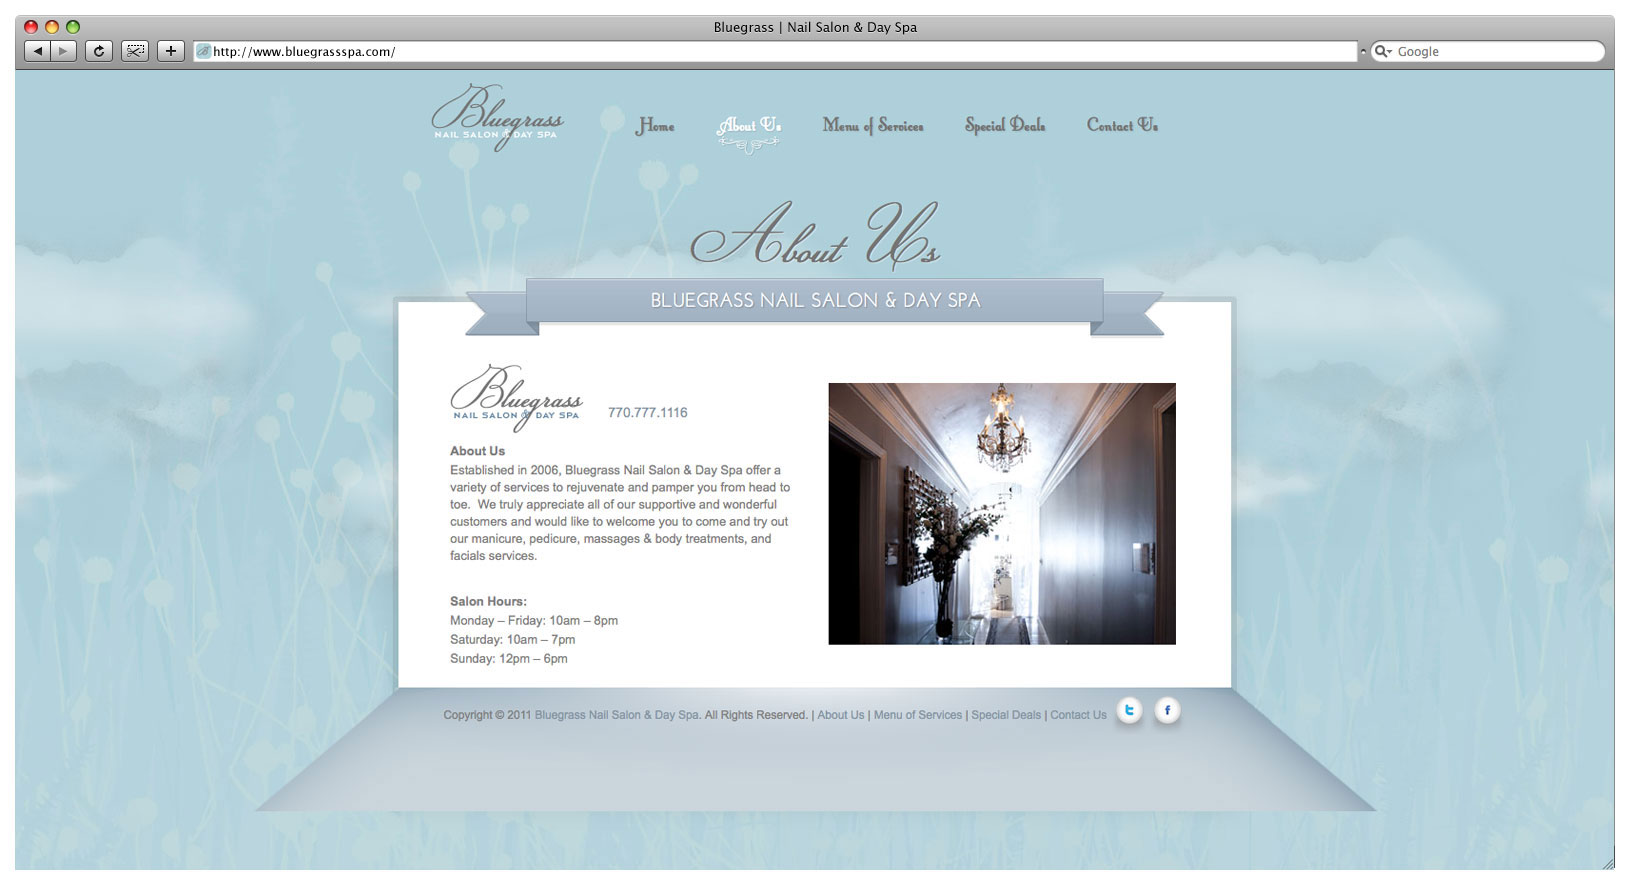 Bluegrass Day Spa & Nail Salon Website - About Us